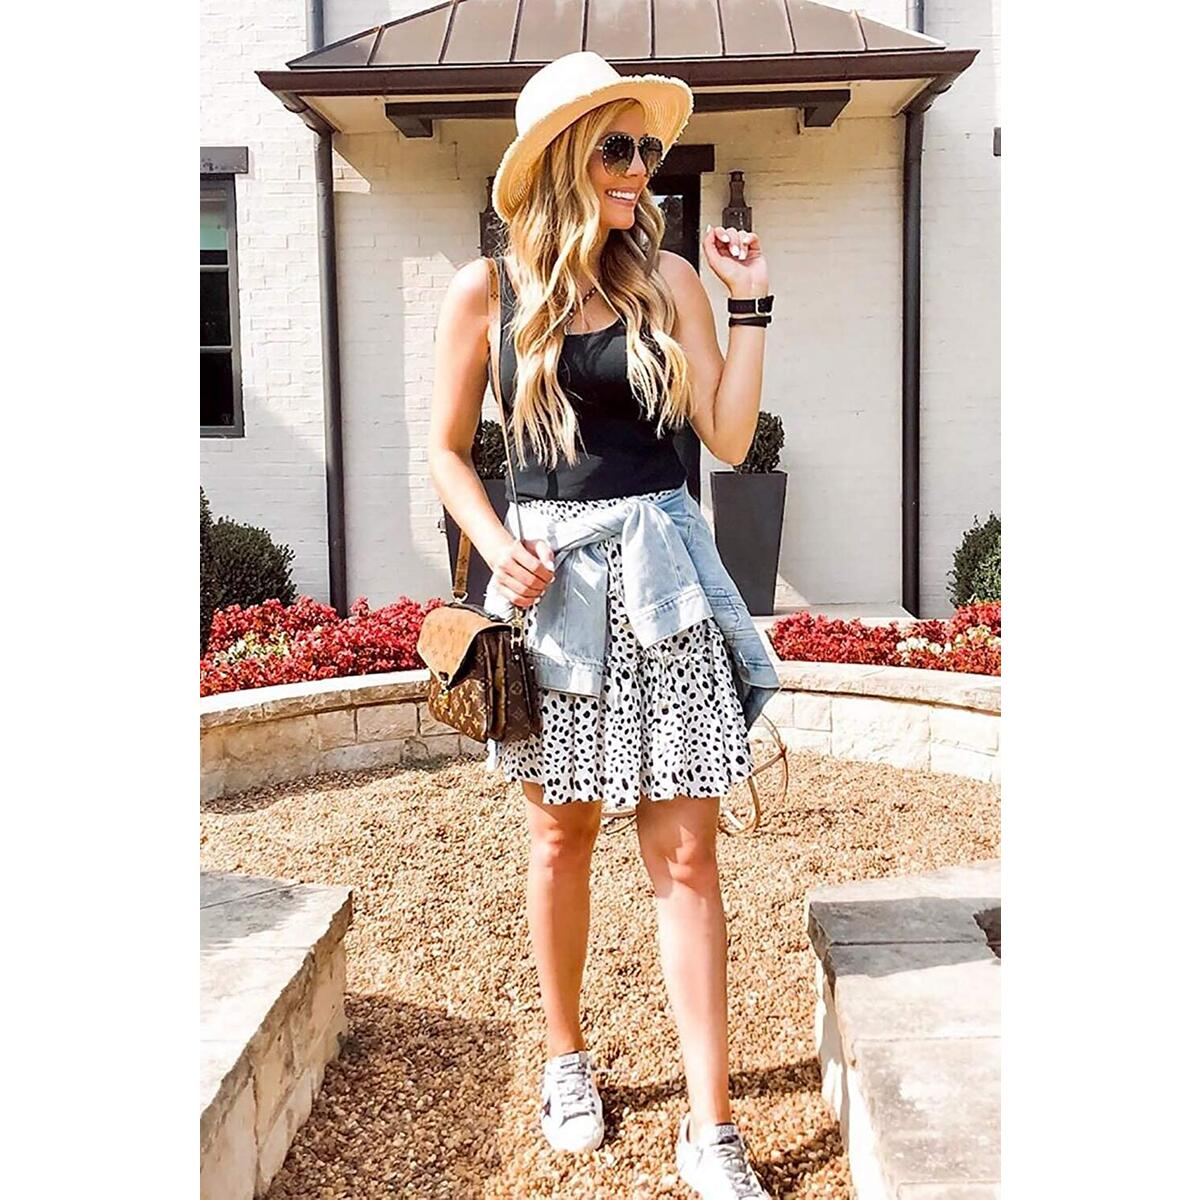 Women's Summer Cute High Waist Ruffle Skirt Floral Print Swing Beach Mini Skirt Black Dot